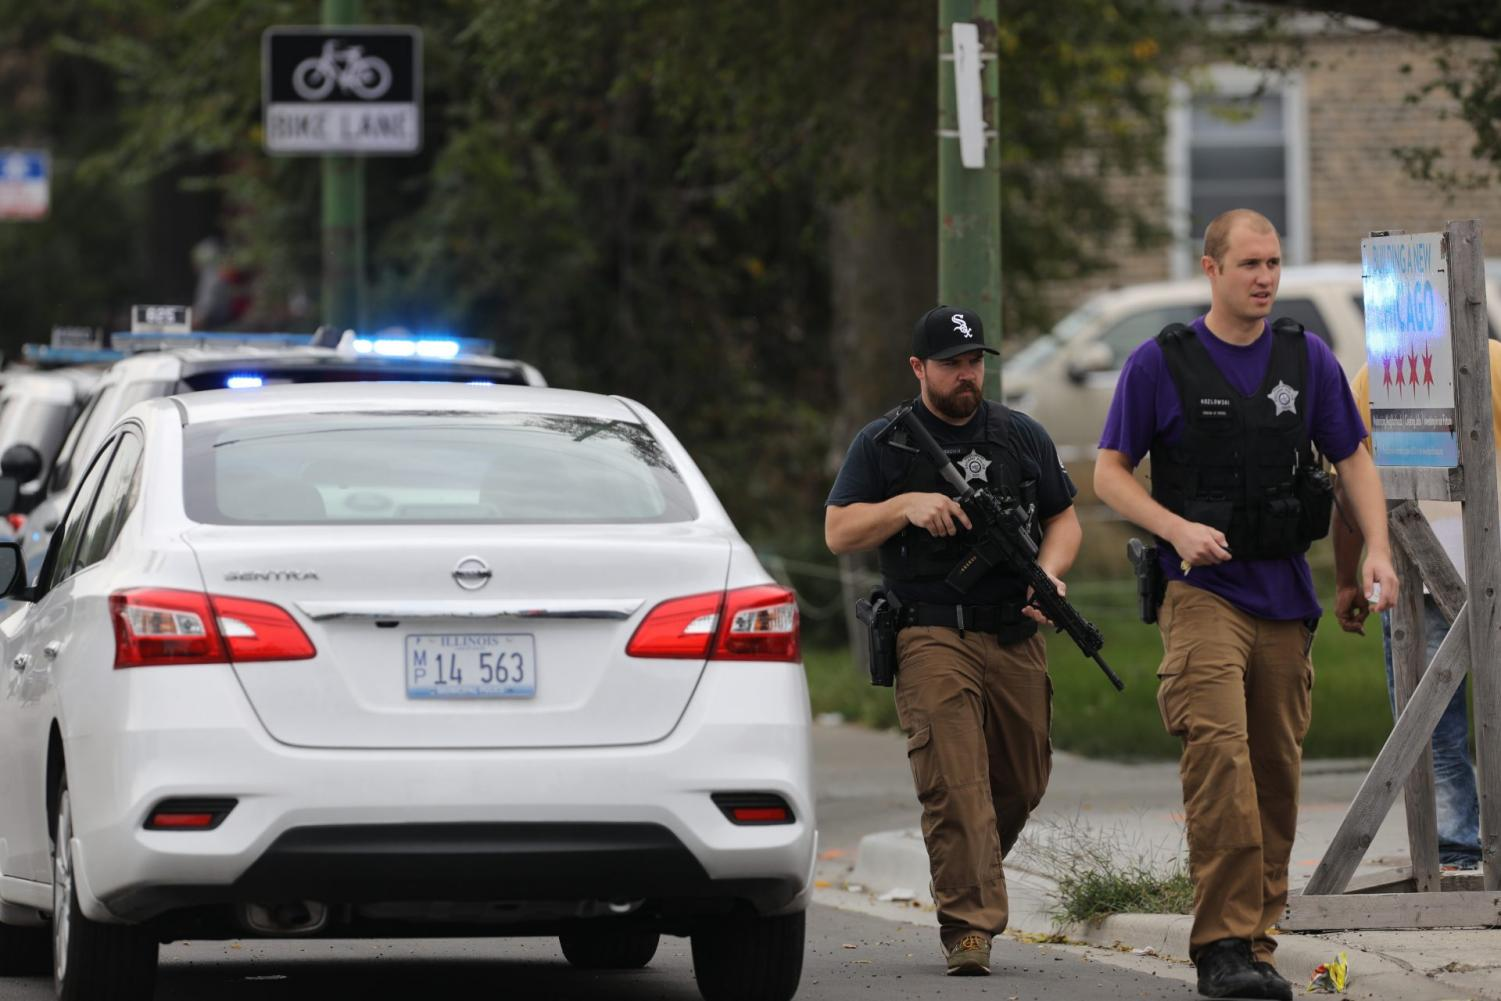 Police search for a suspect that shot a Chicago Police Department officer, near 63rd and Damen, Saturday, Sept. 21, 2019. The shooting happened around 8:40 a.m.